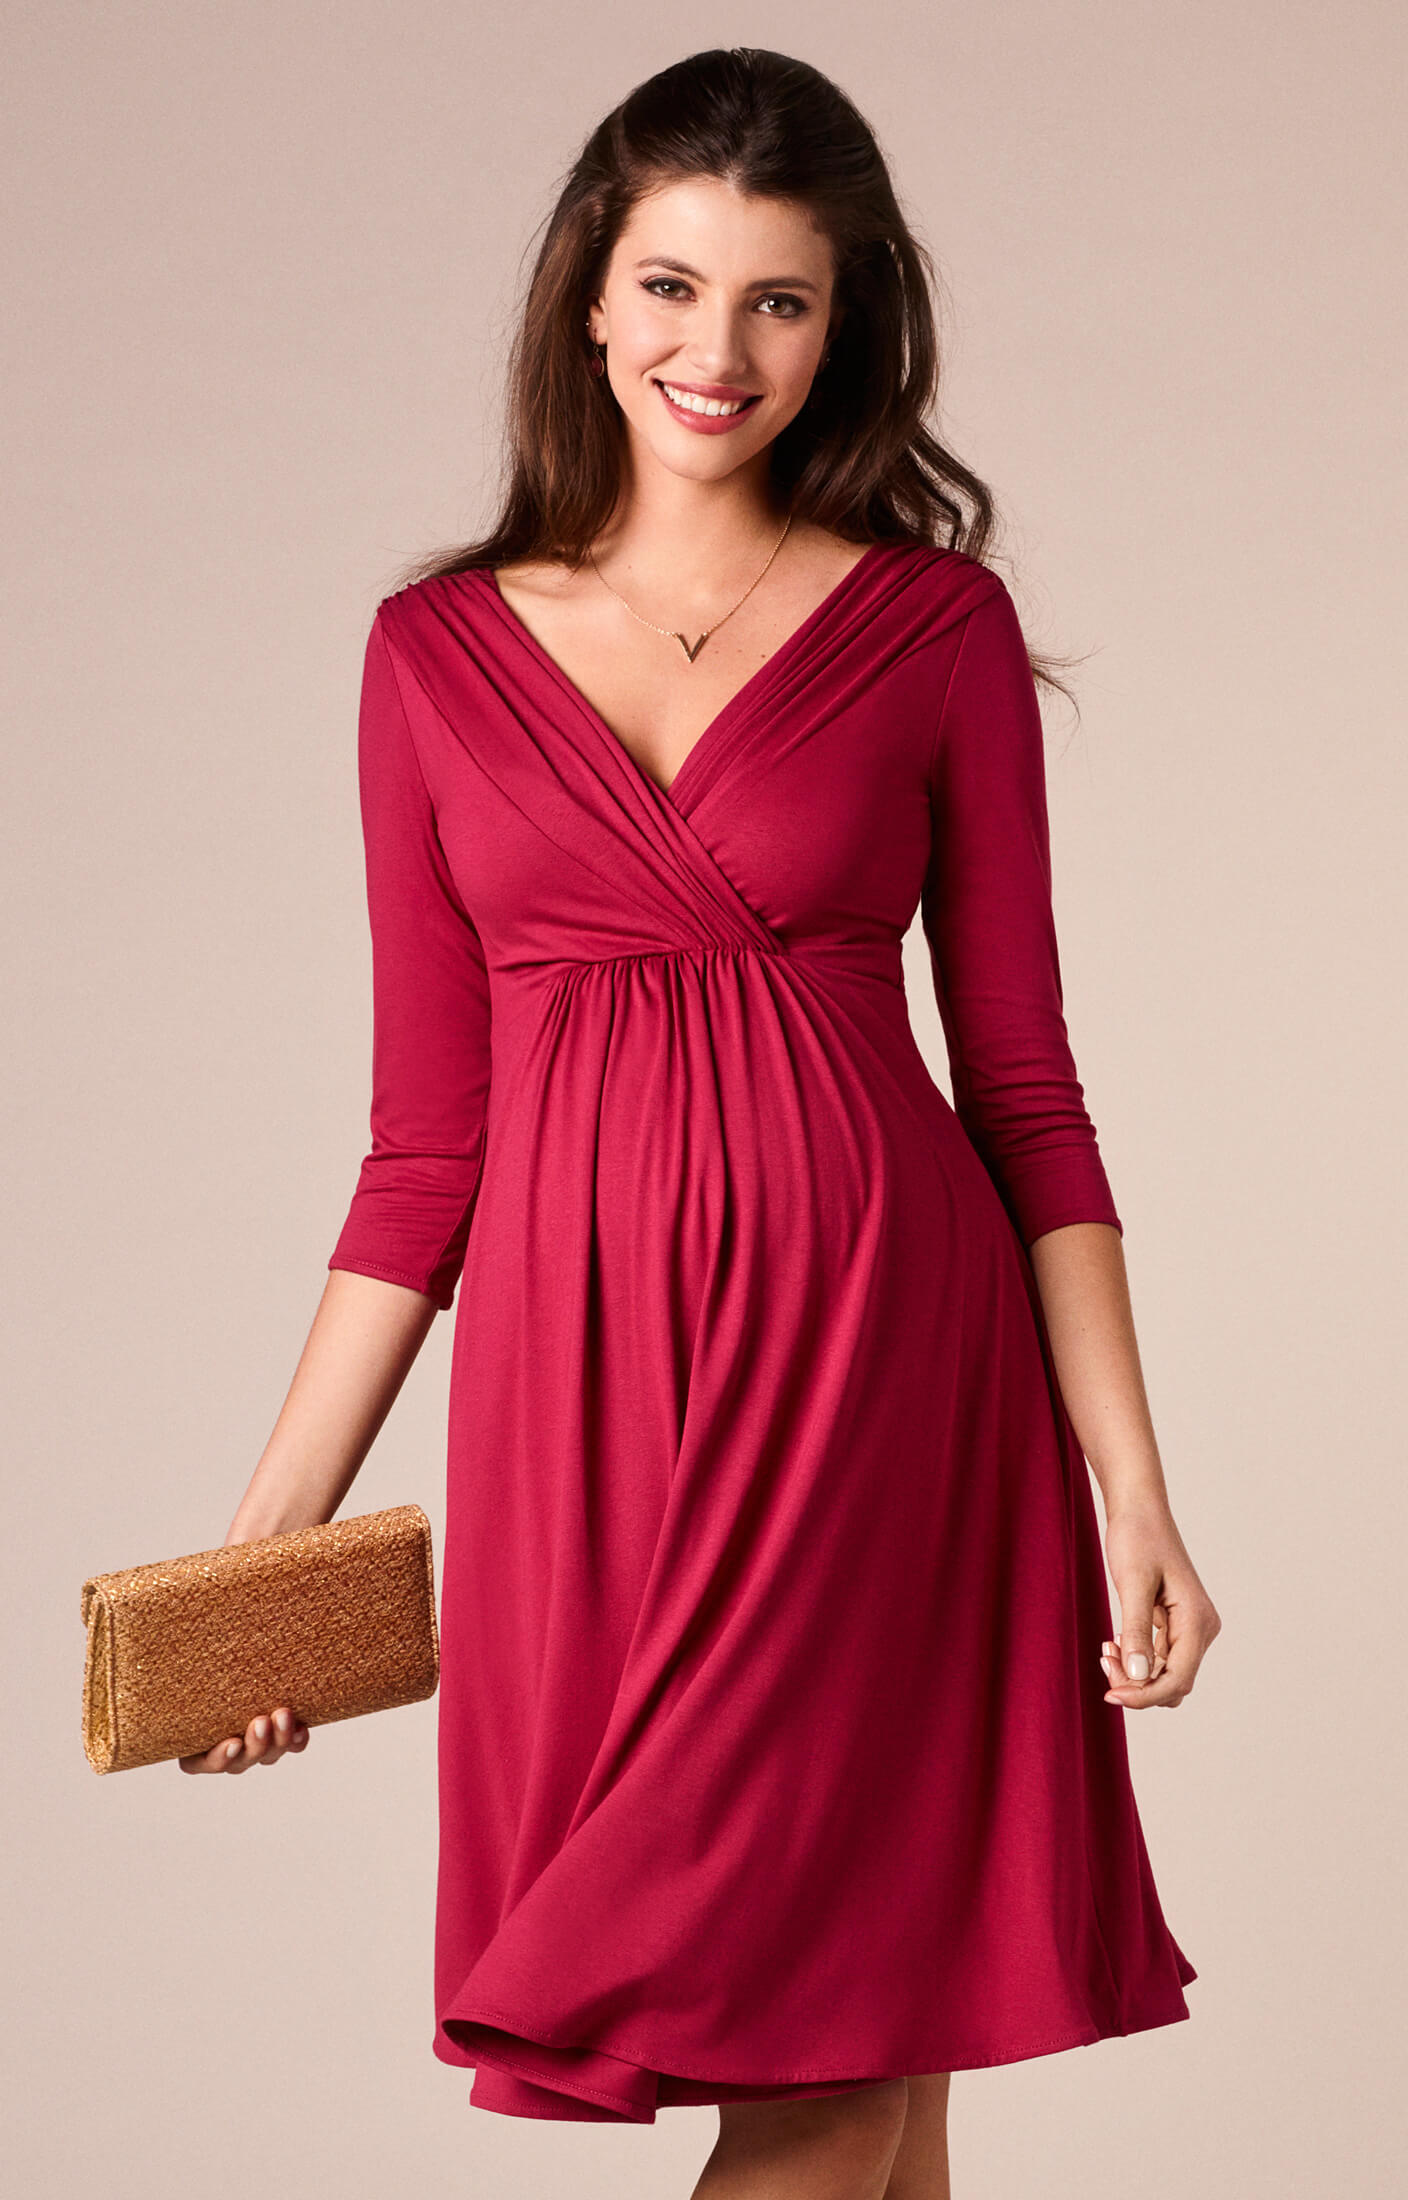 Maternity Dresses For Every Occassion. Expecting mothers can all agree that a good maternity dress is an essential to a comfortable maternity wardrobe. Here, you can search cute maternity dresses for .